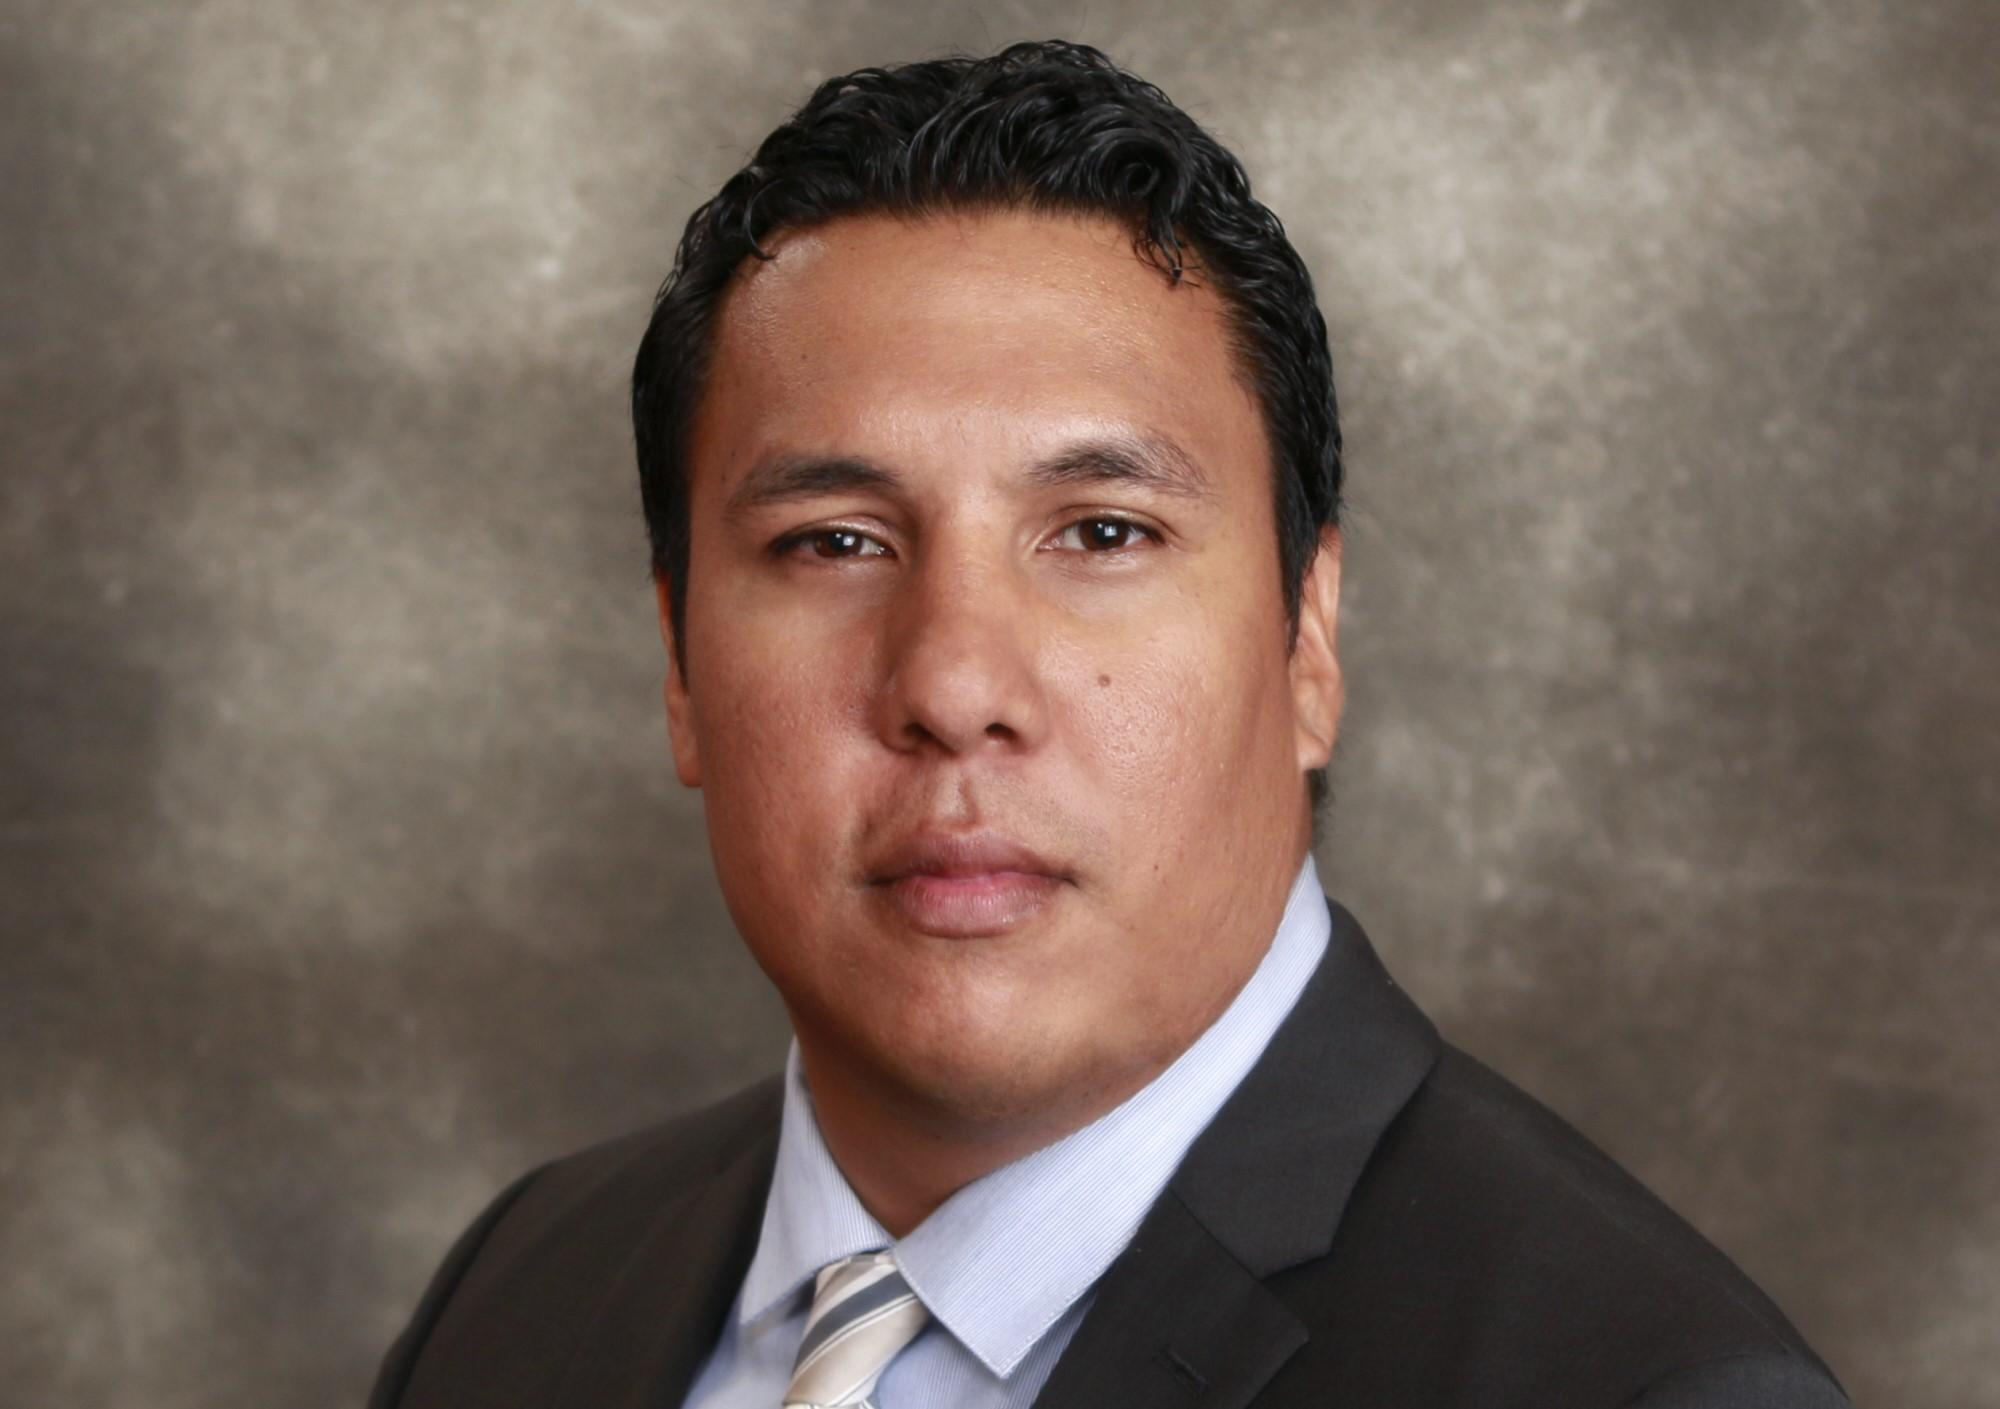 ISAIAH KAIMANA AINA Financial Professional & Insurance Agent